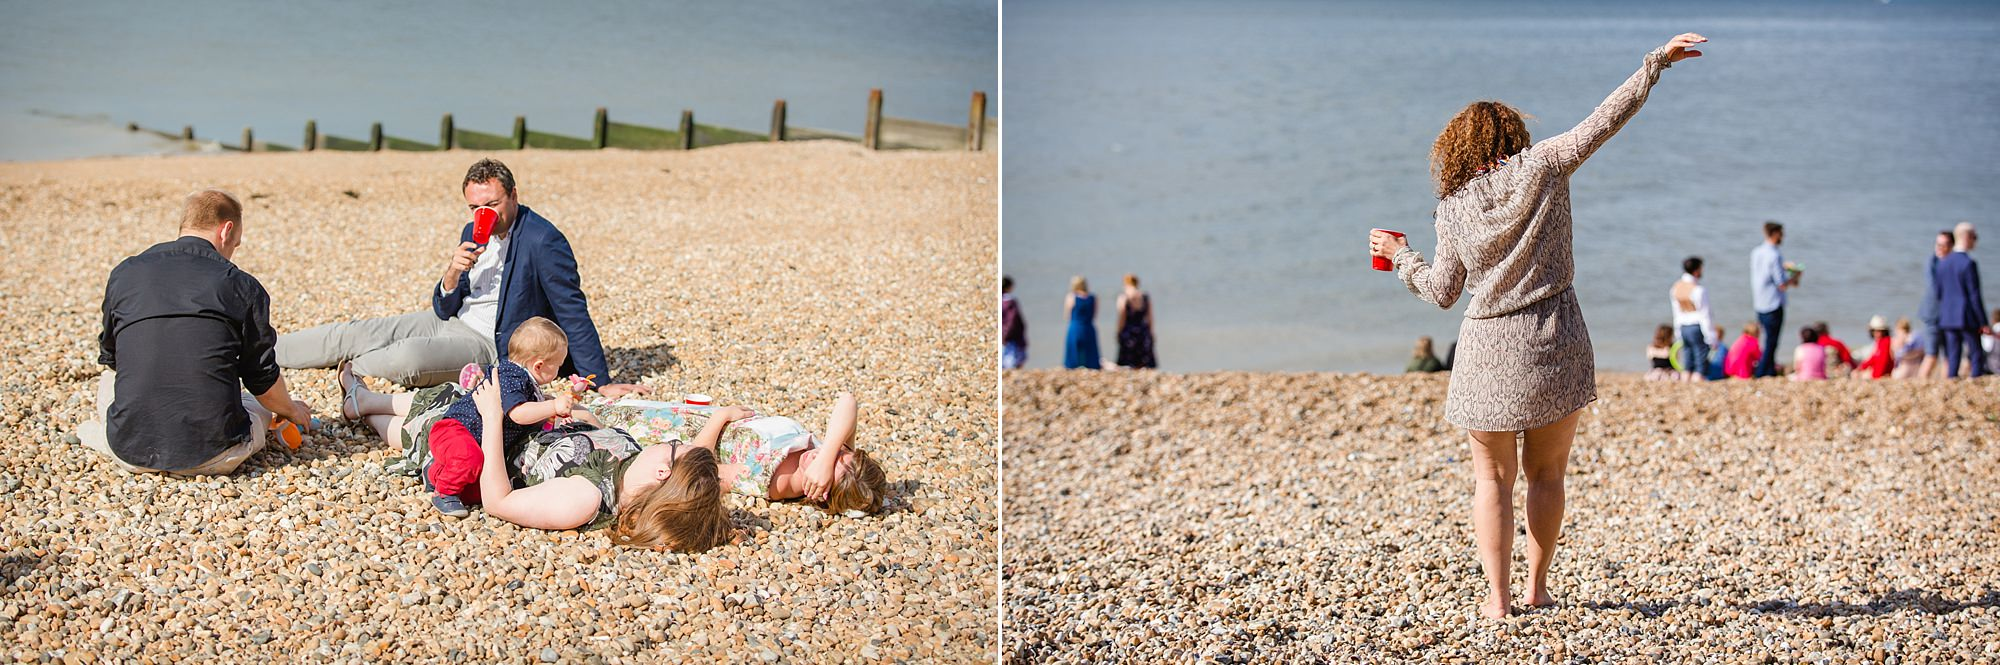 Beacon House wedding guests sunbathe on the beach